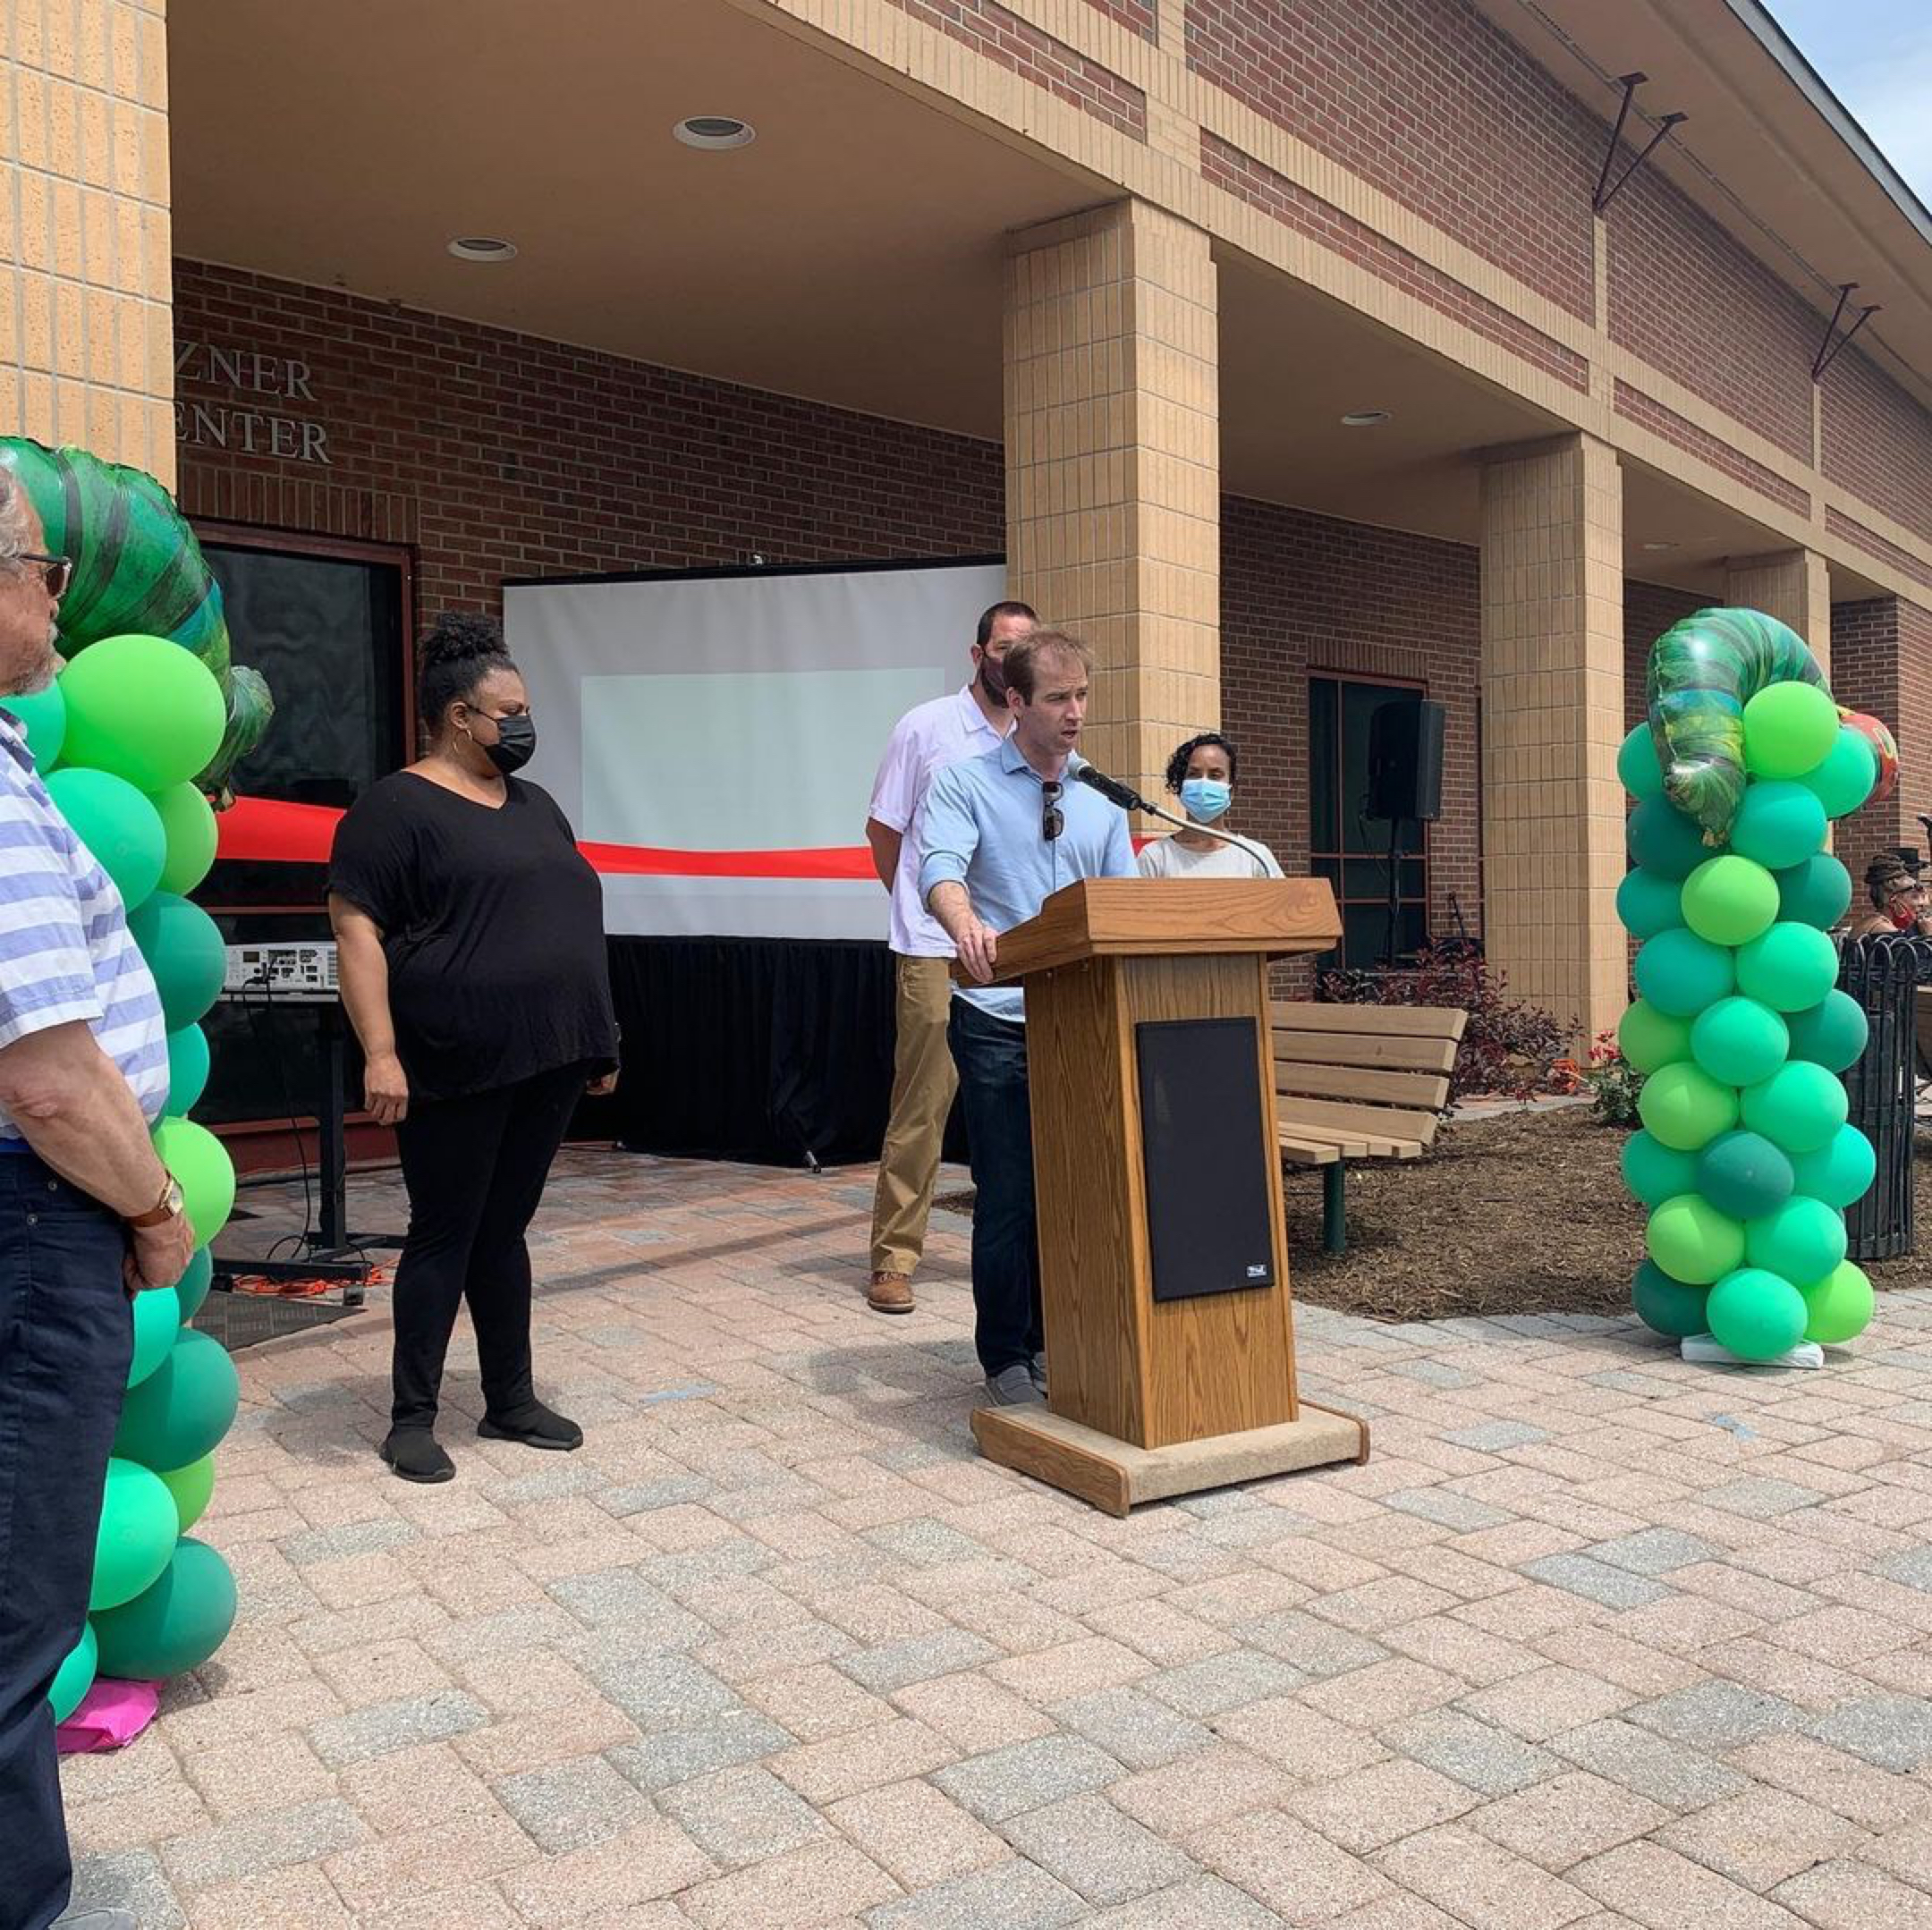 Thanks Mayor Luke Bronin for making this happen. As the architects for this project, we are thrilled to give the community a brand new bright and happy day care/early learning facility for toddlers and pre-K. My favorite type of project !